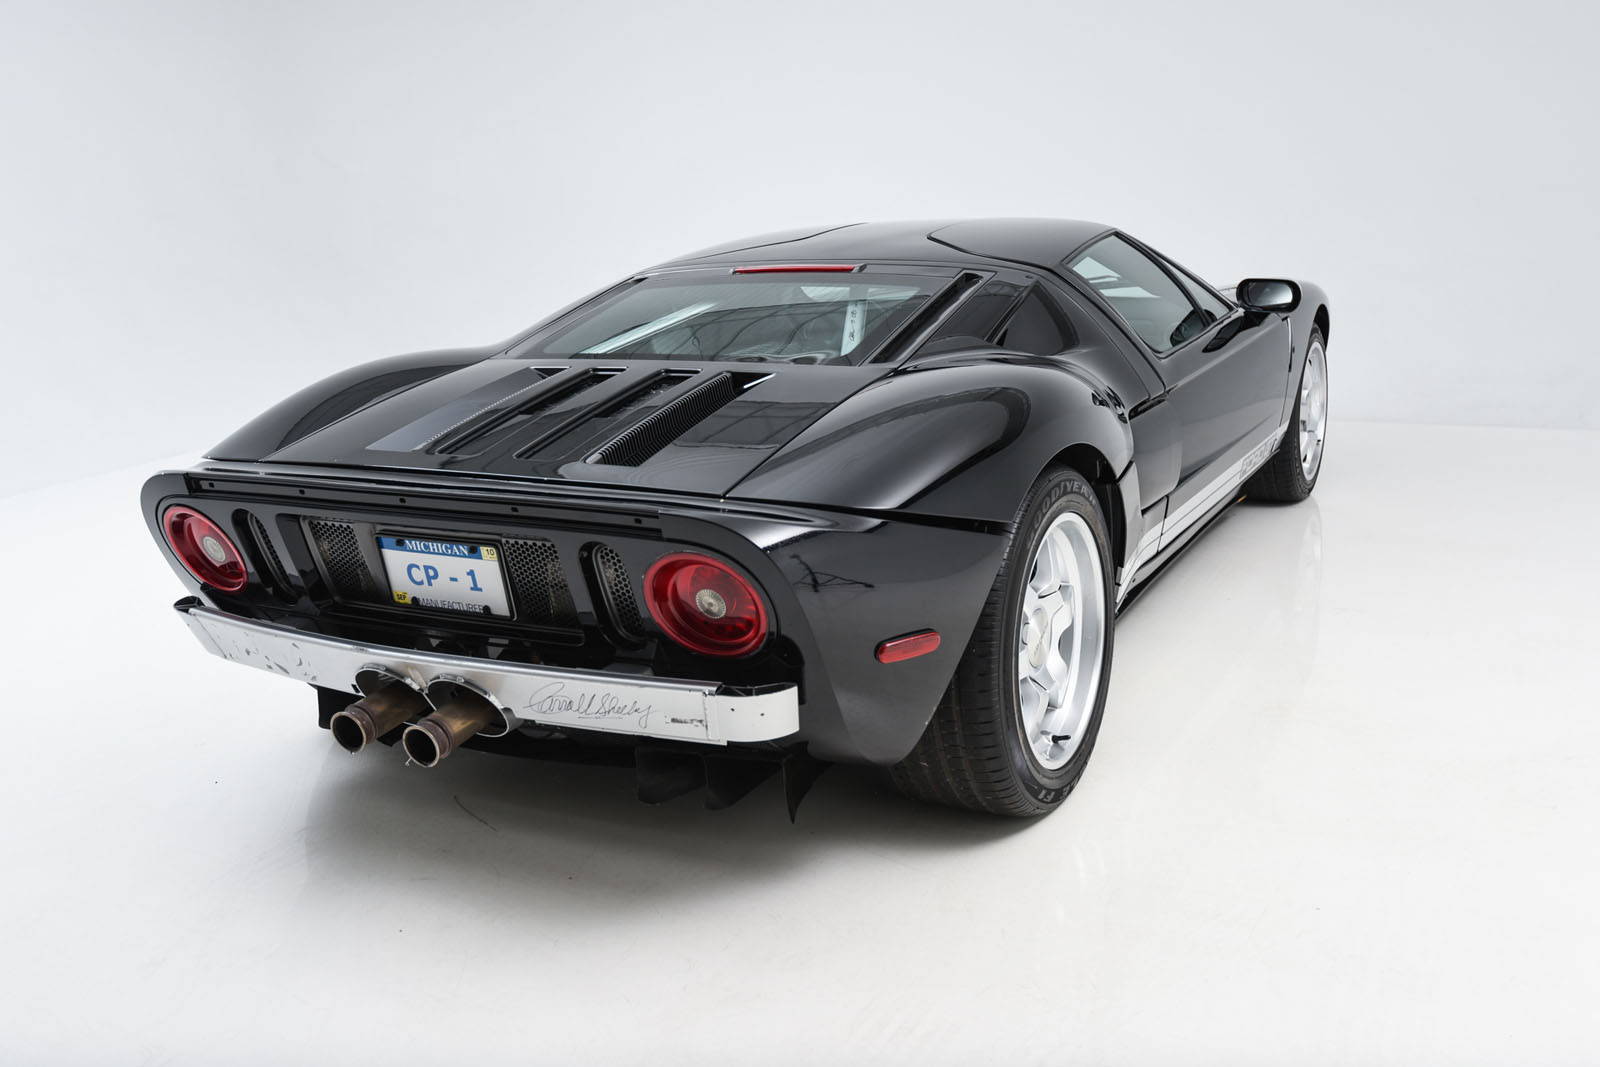 Ford GT Prototype CP-1 auction (25)